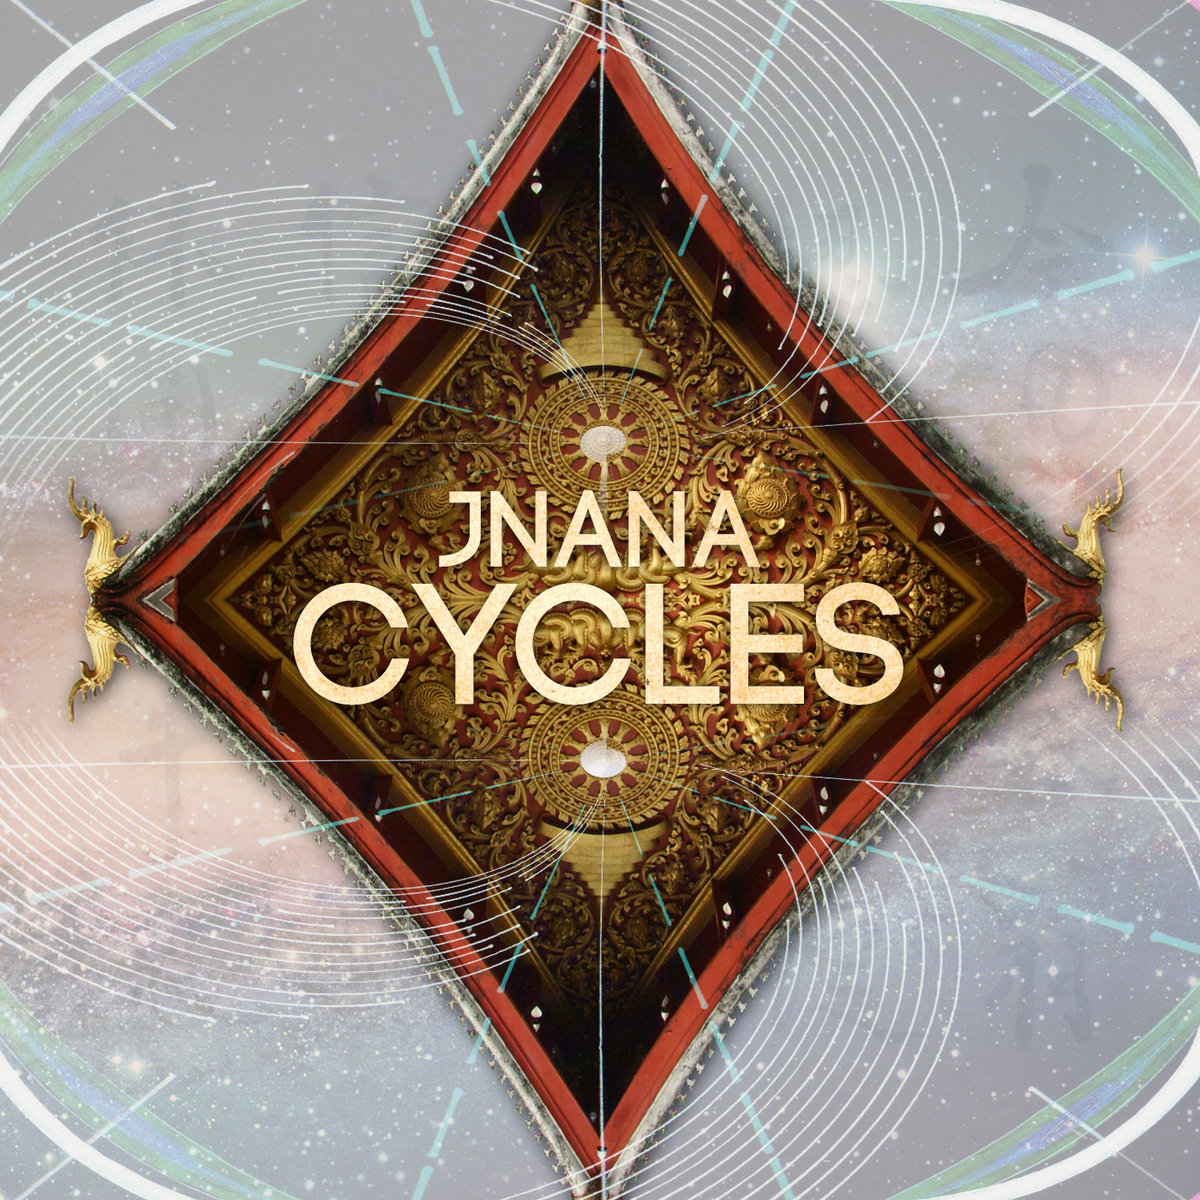 Jnana feat. Alliekat - Rooftop Nocturne @ 'Cycles' album (bass, crunk)